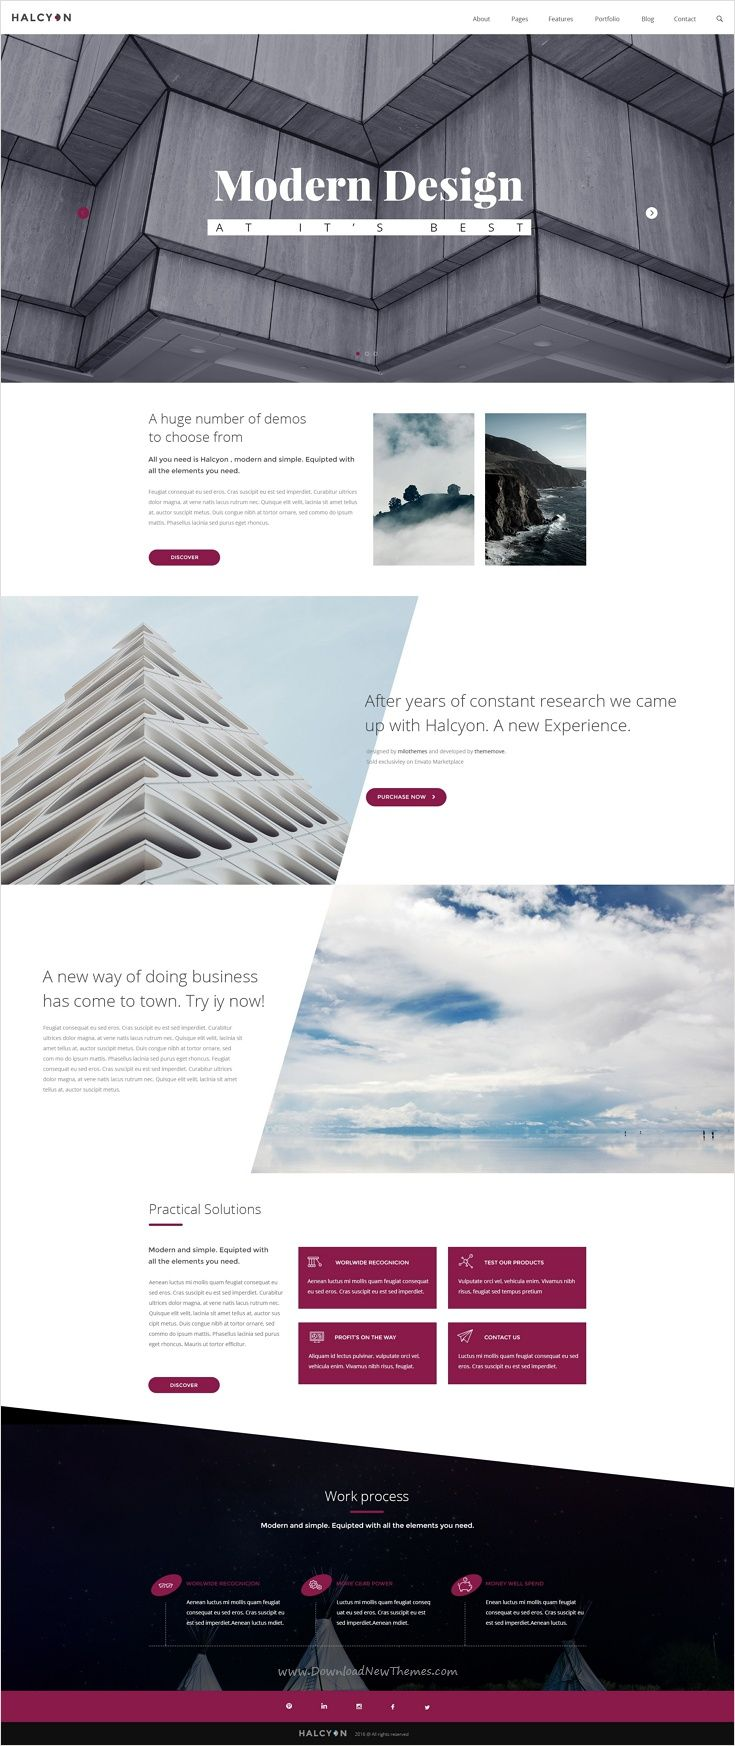 Halcyon is a beautifully #design premium #PSD #template for stunning website with 30+ multipurpose homepage layouts and 52 organized PSD pages download now➩ https://themeforest.net/item/halcyon-multipurpose-modern-website-psd-template/17535264?ref=Datasata